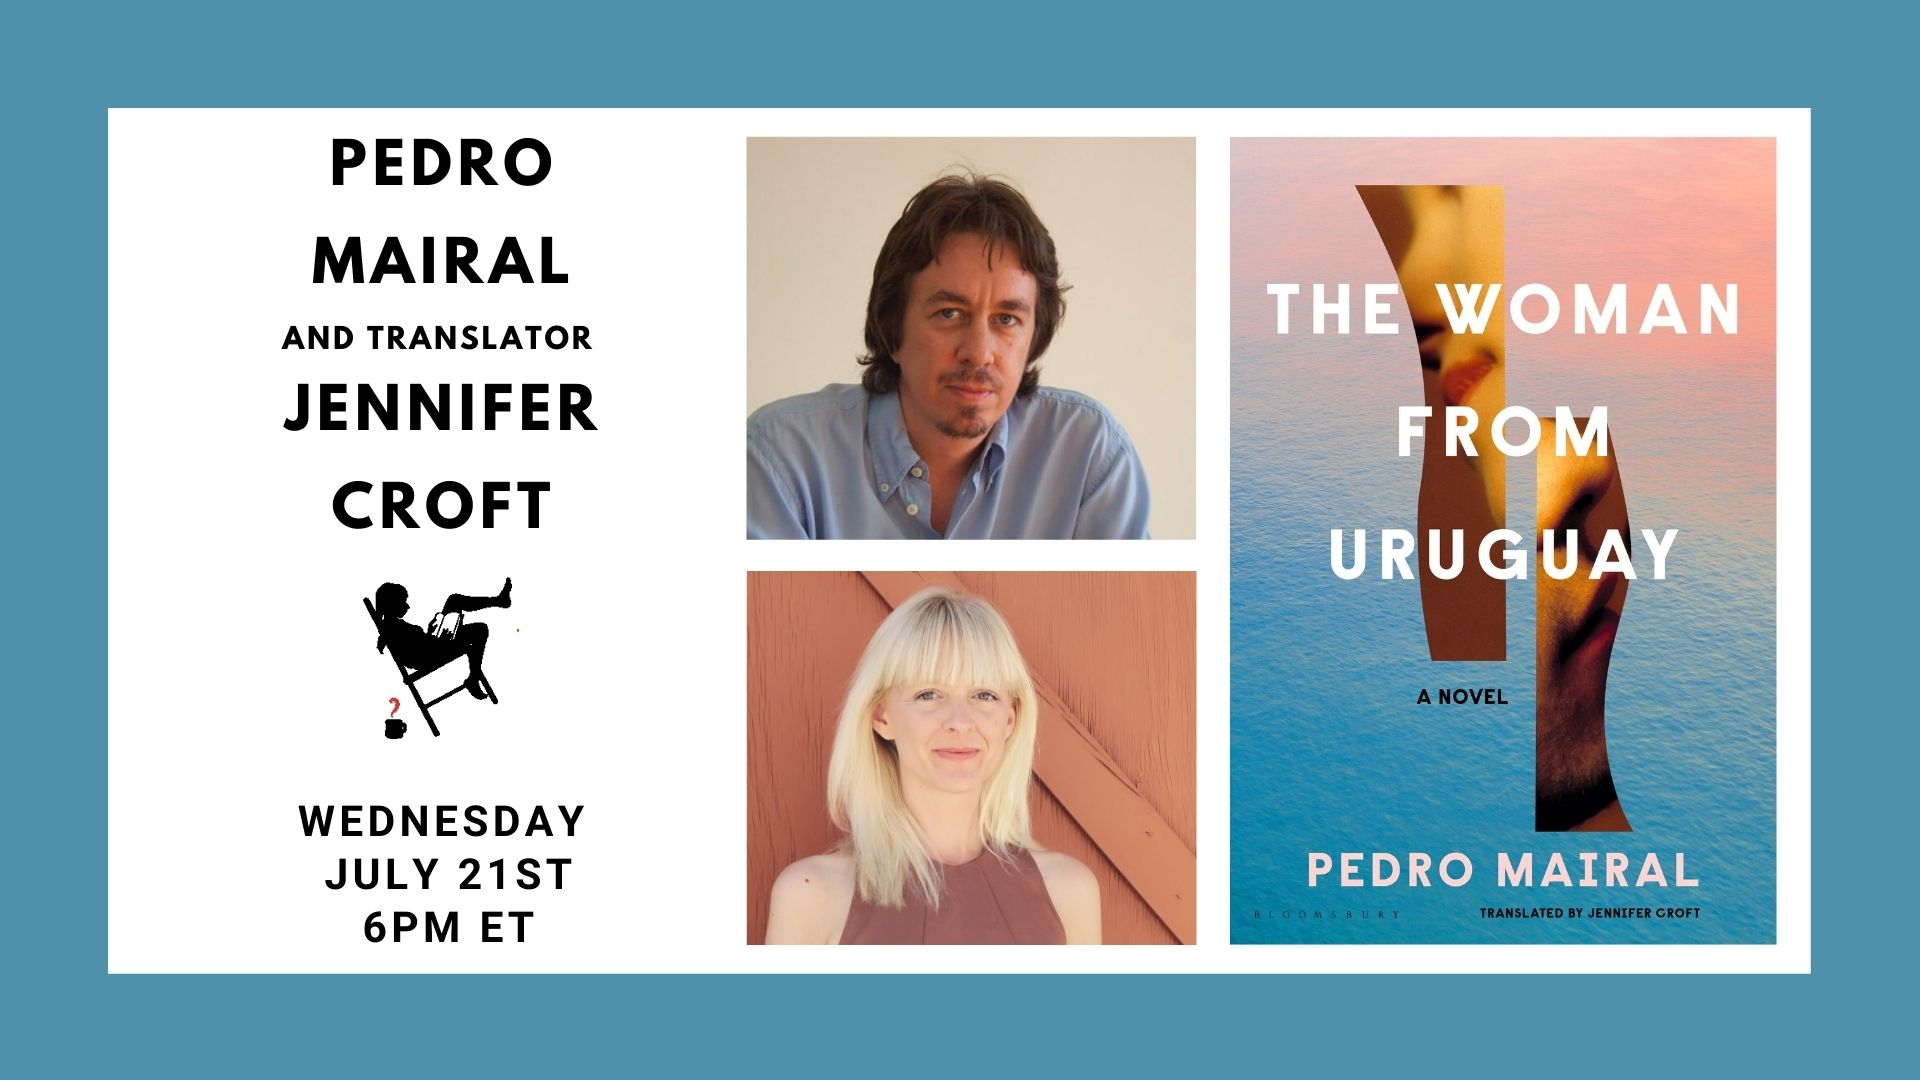 Image shows a blue border with a white box containing: The Woman from Uruguay book cover and title; photos of Pedro Mairal and Jennifer Croft; and the event date of 7/21/21 at 6pm.